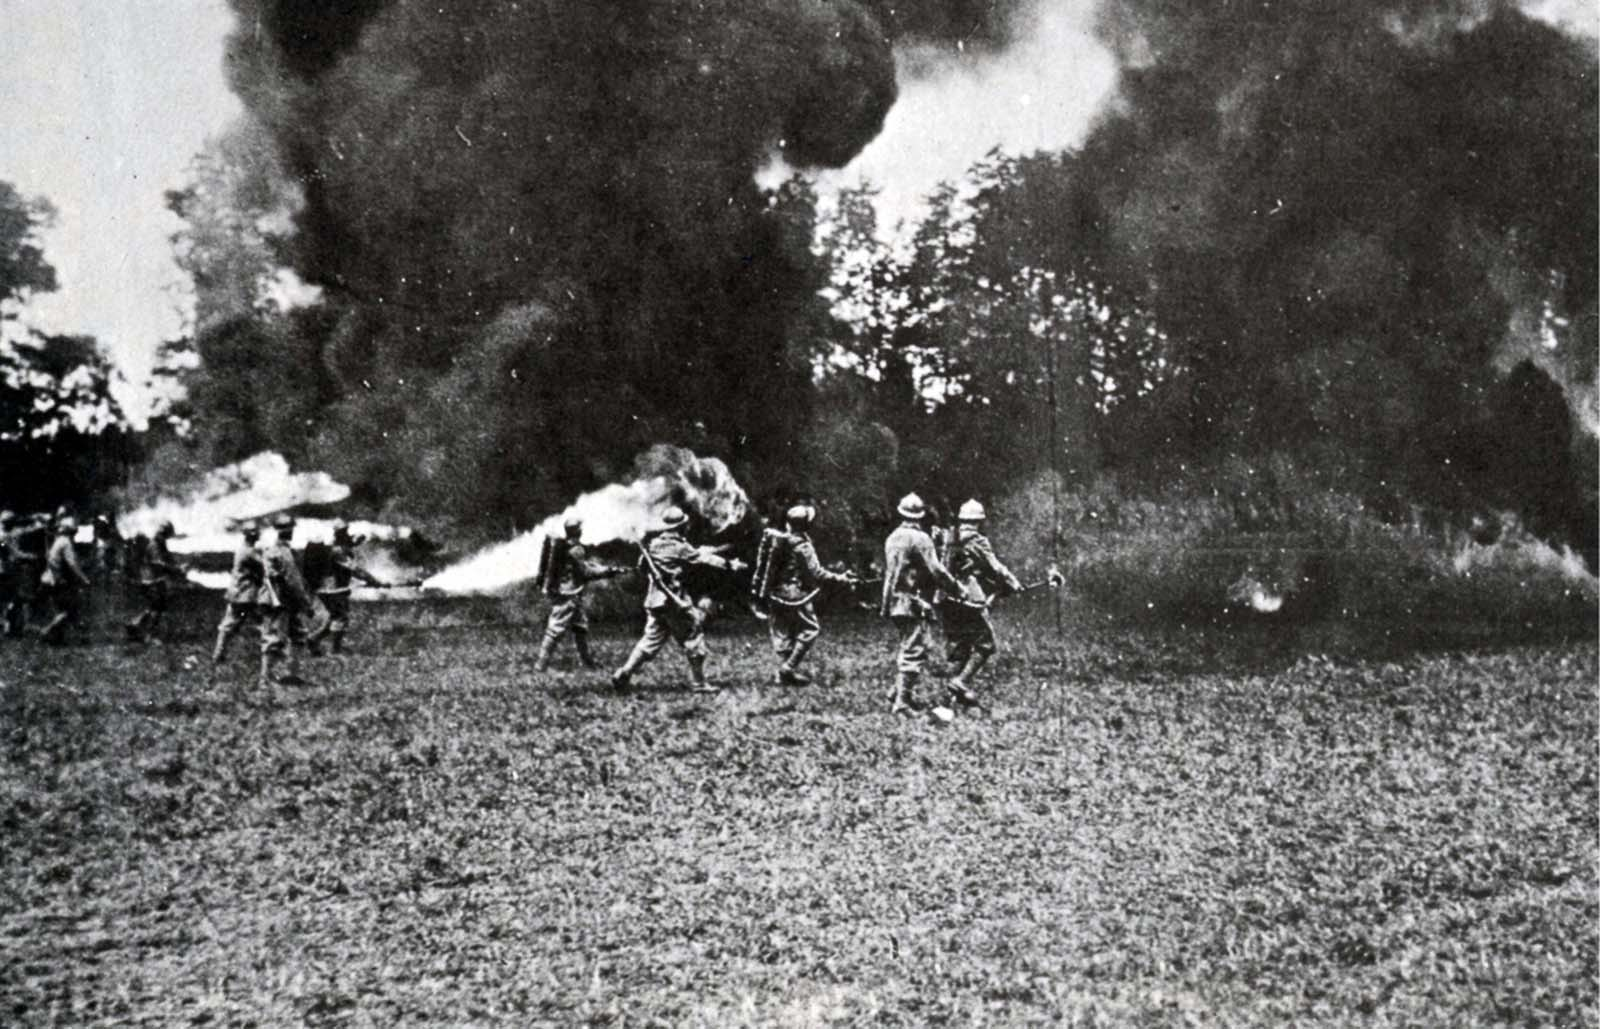 Italian special forces assault an Austrian trench. 1918.